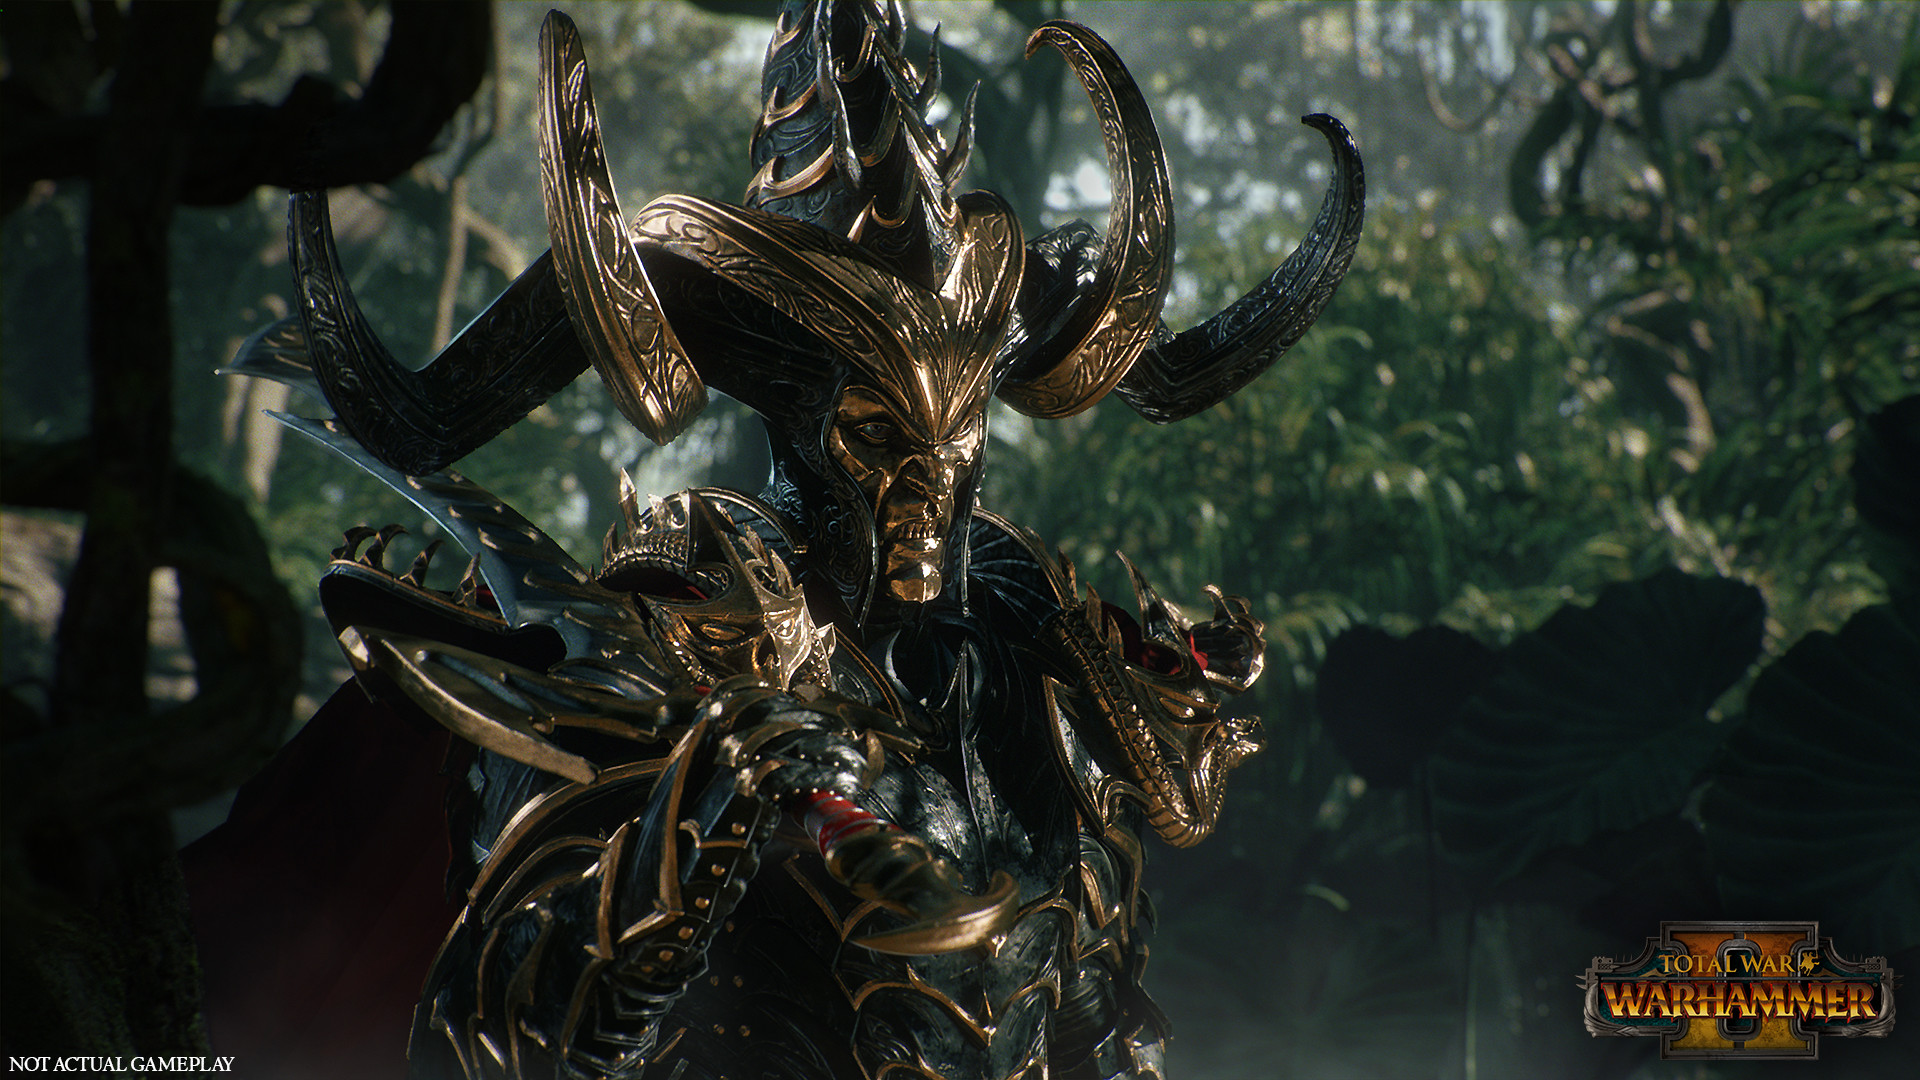 Malekith, Witch-King of the Dark Elves